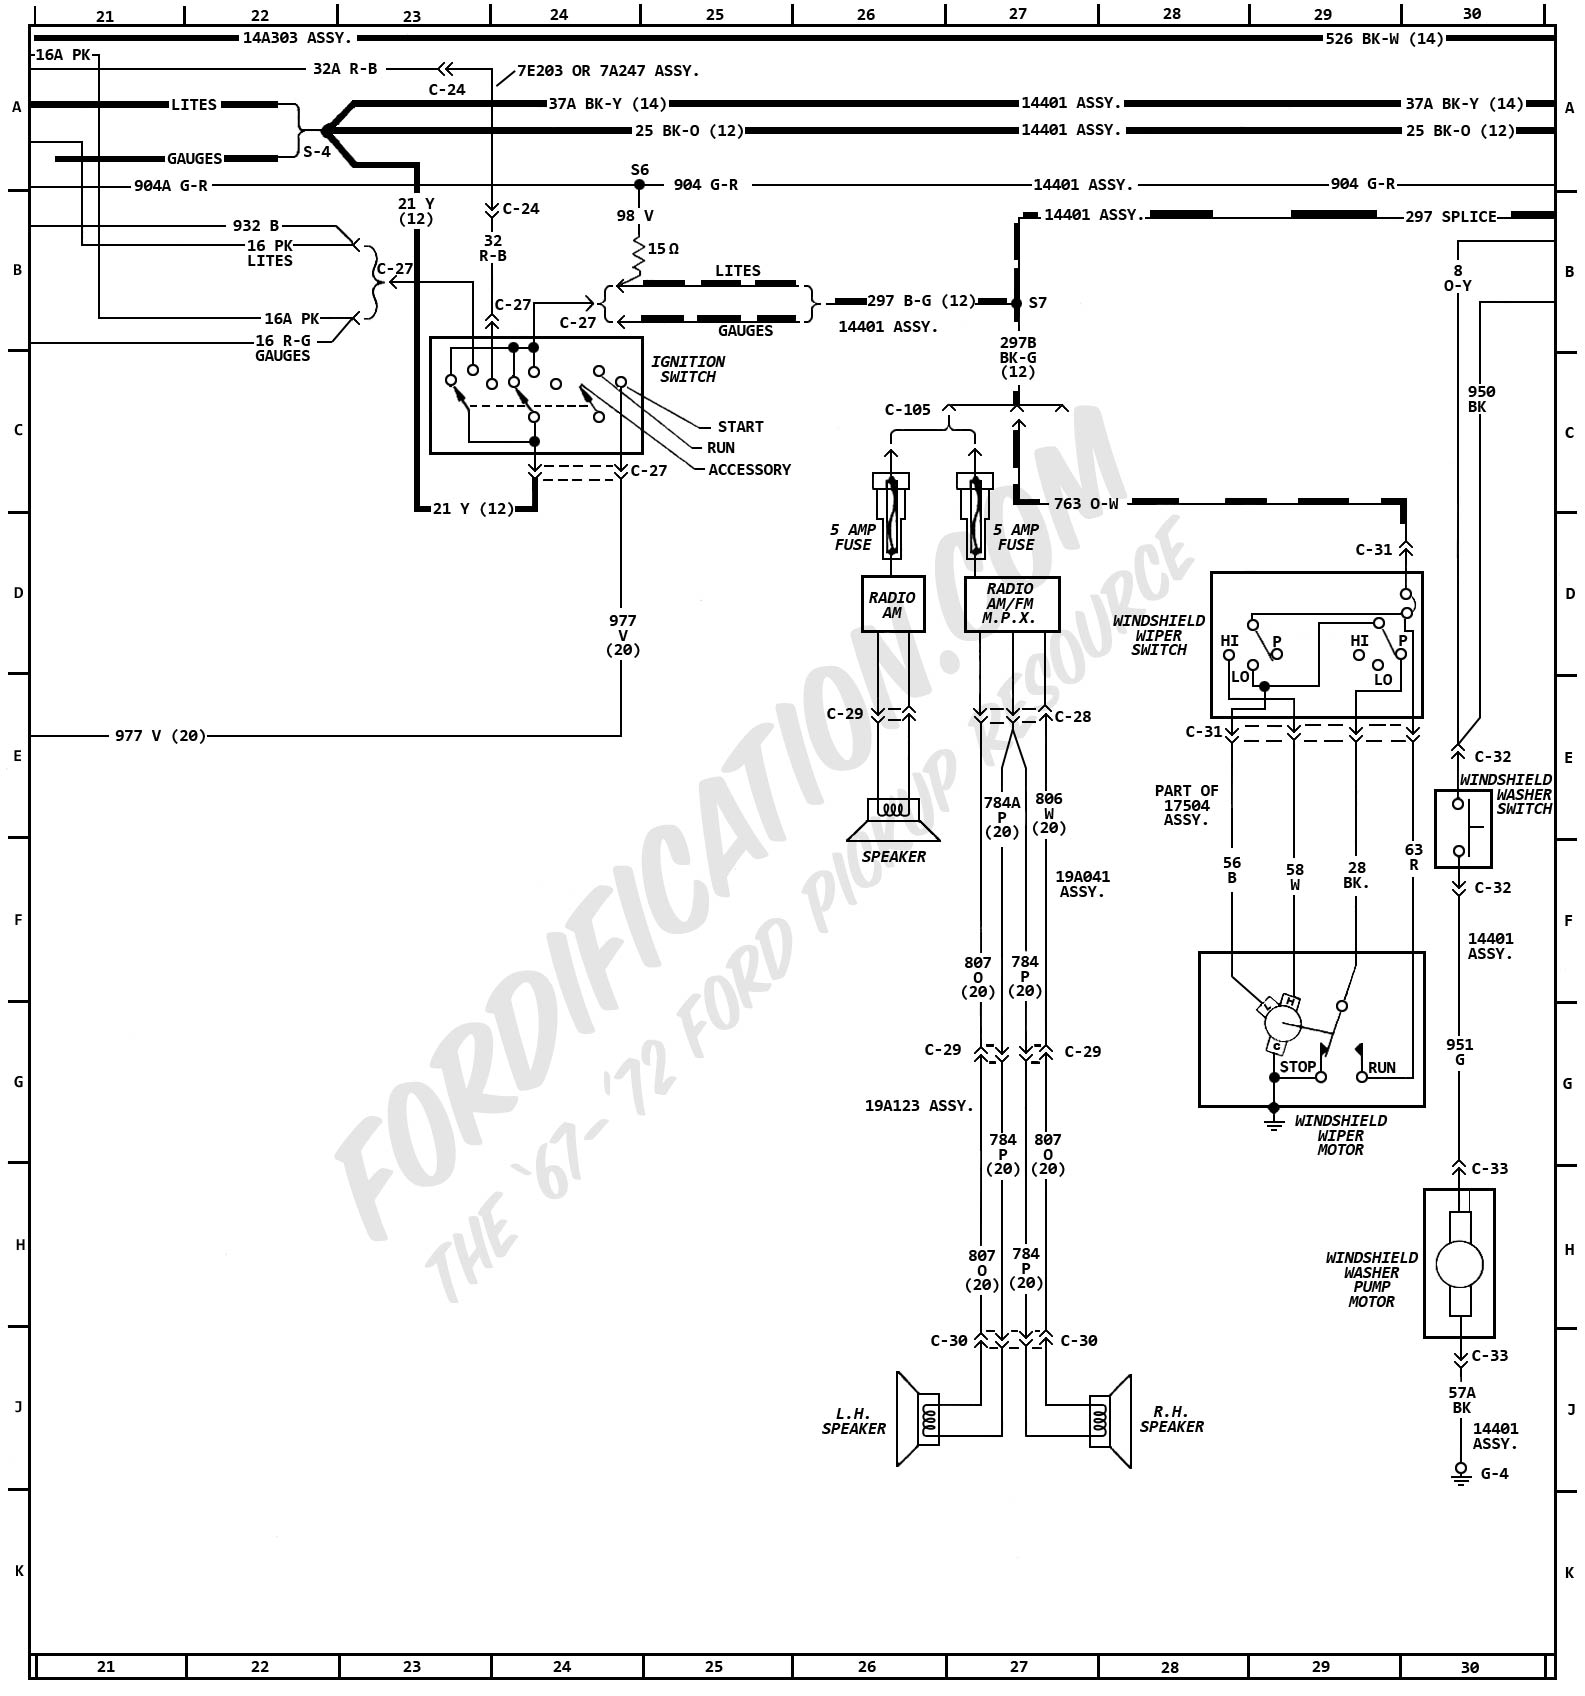 72 ford f250 wiring diagram kenmore dryer heating element ignition switch colors the fordification forums